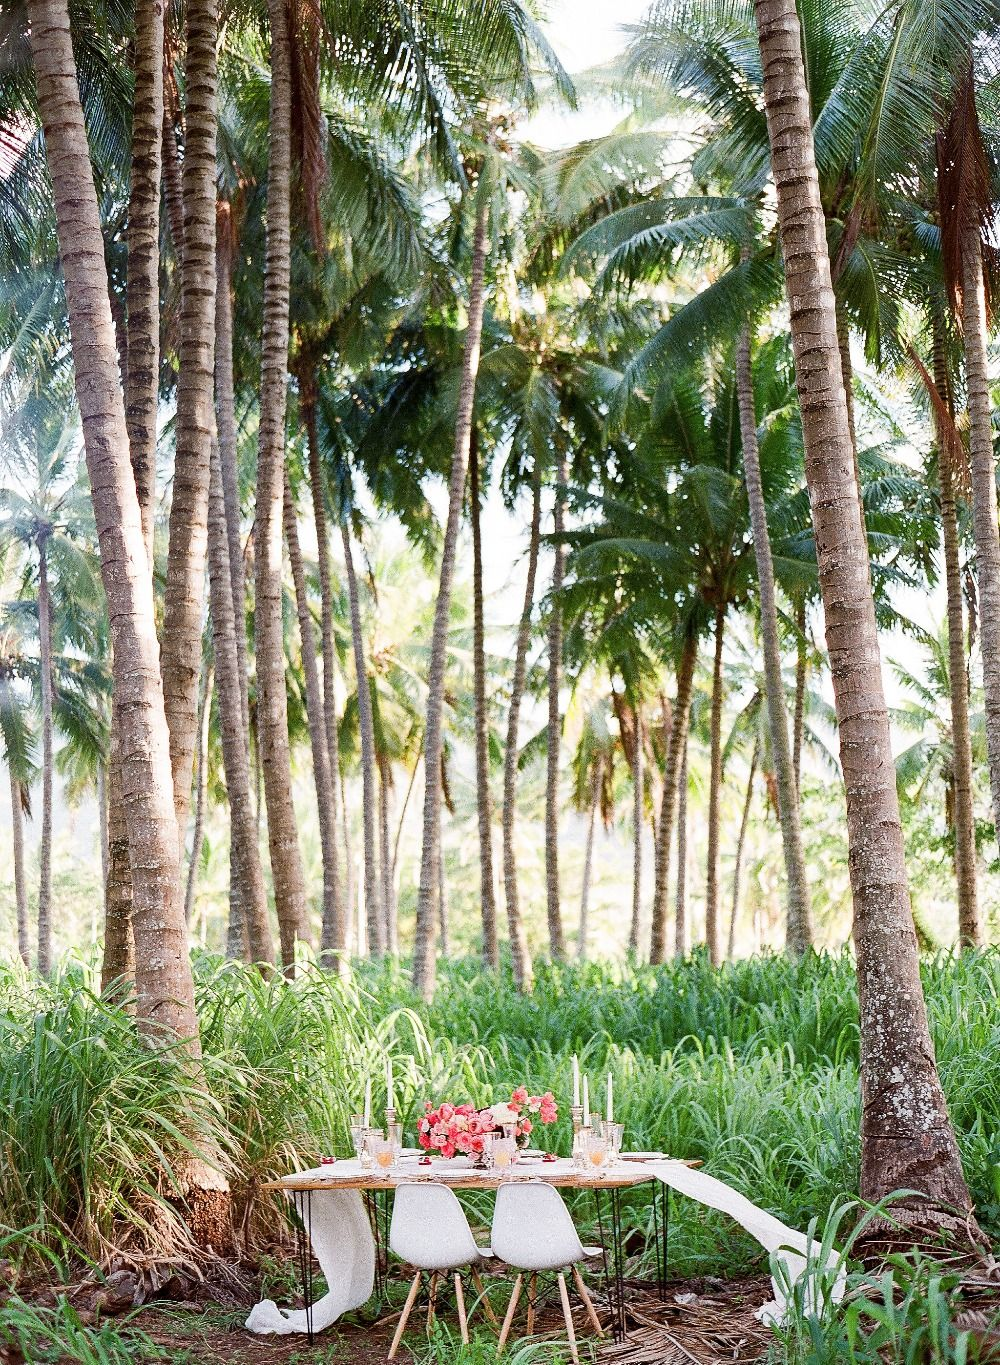 Tropical jungle wedding reception setting